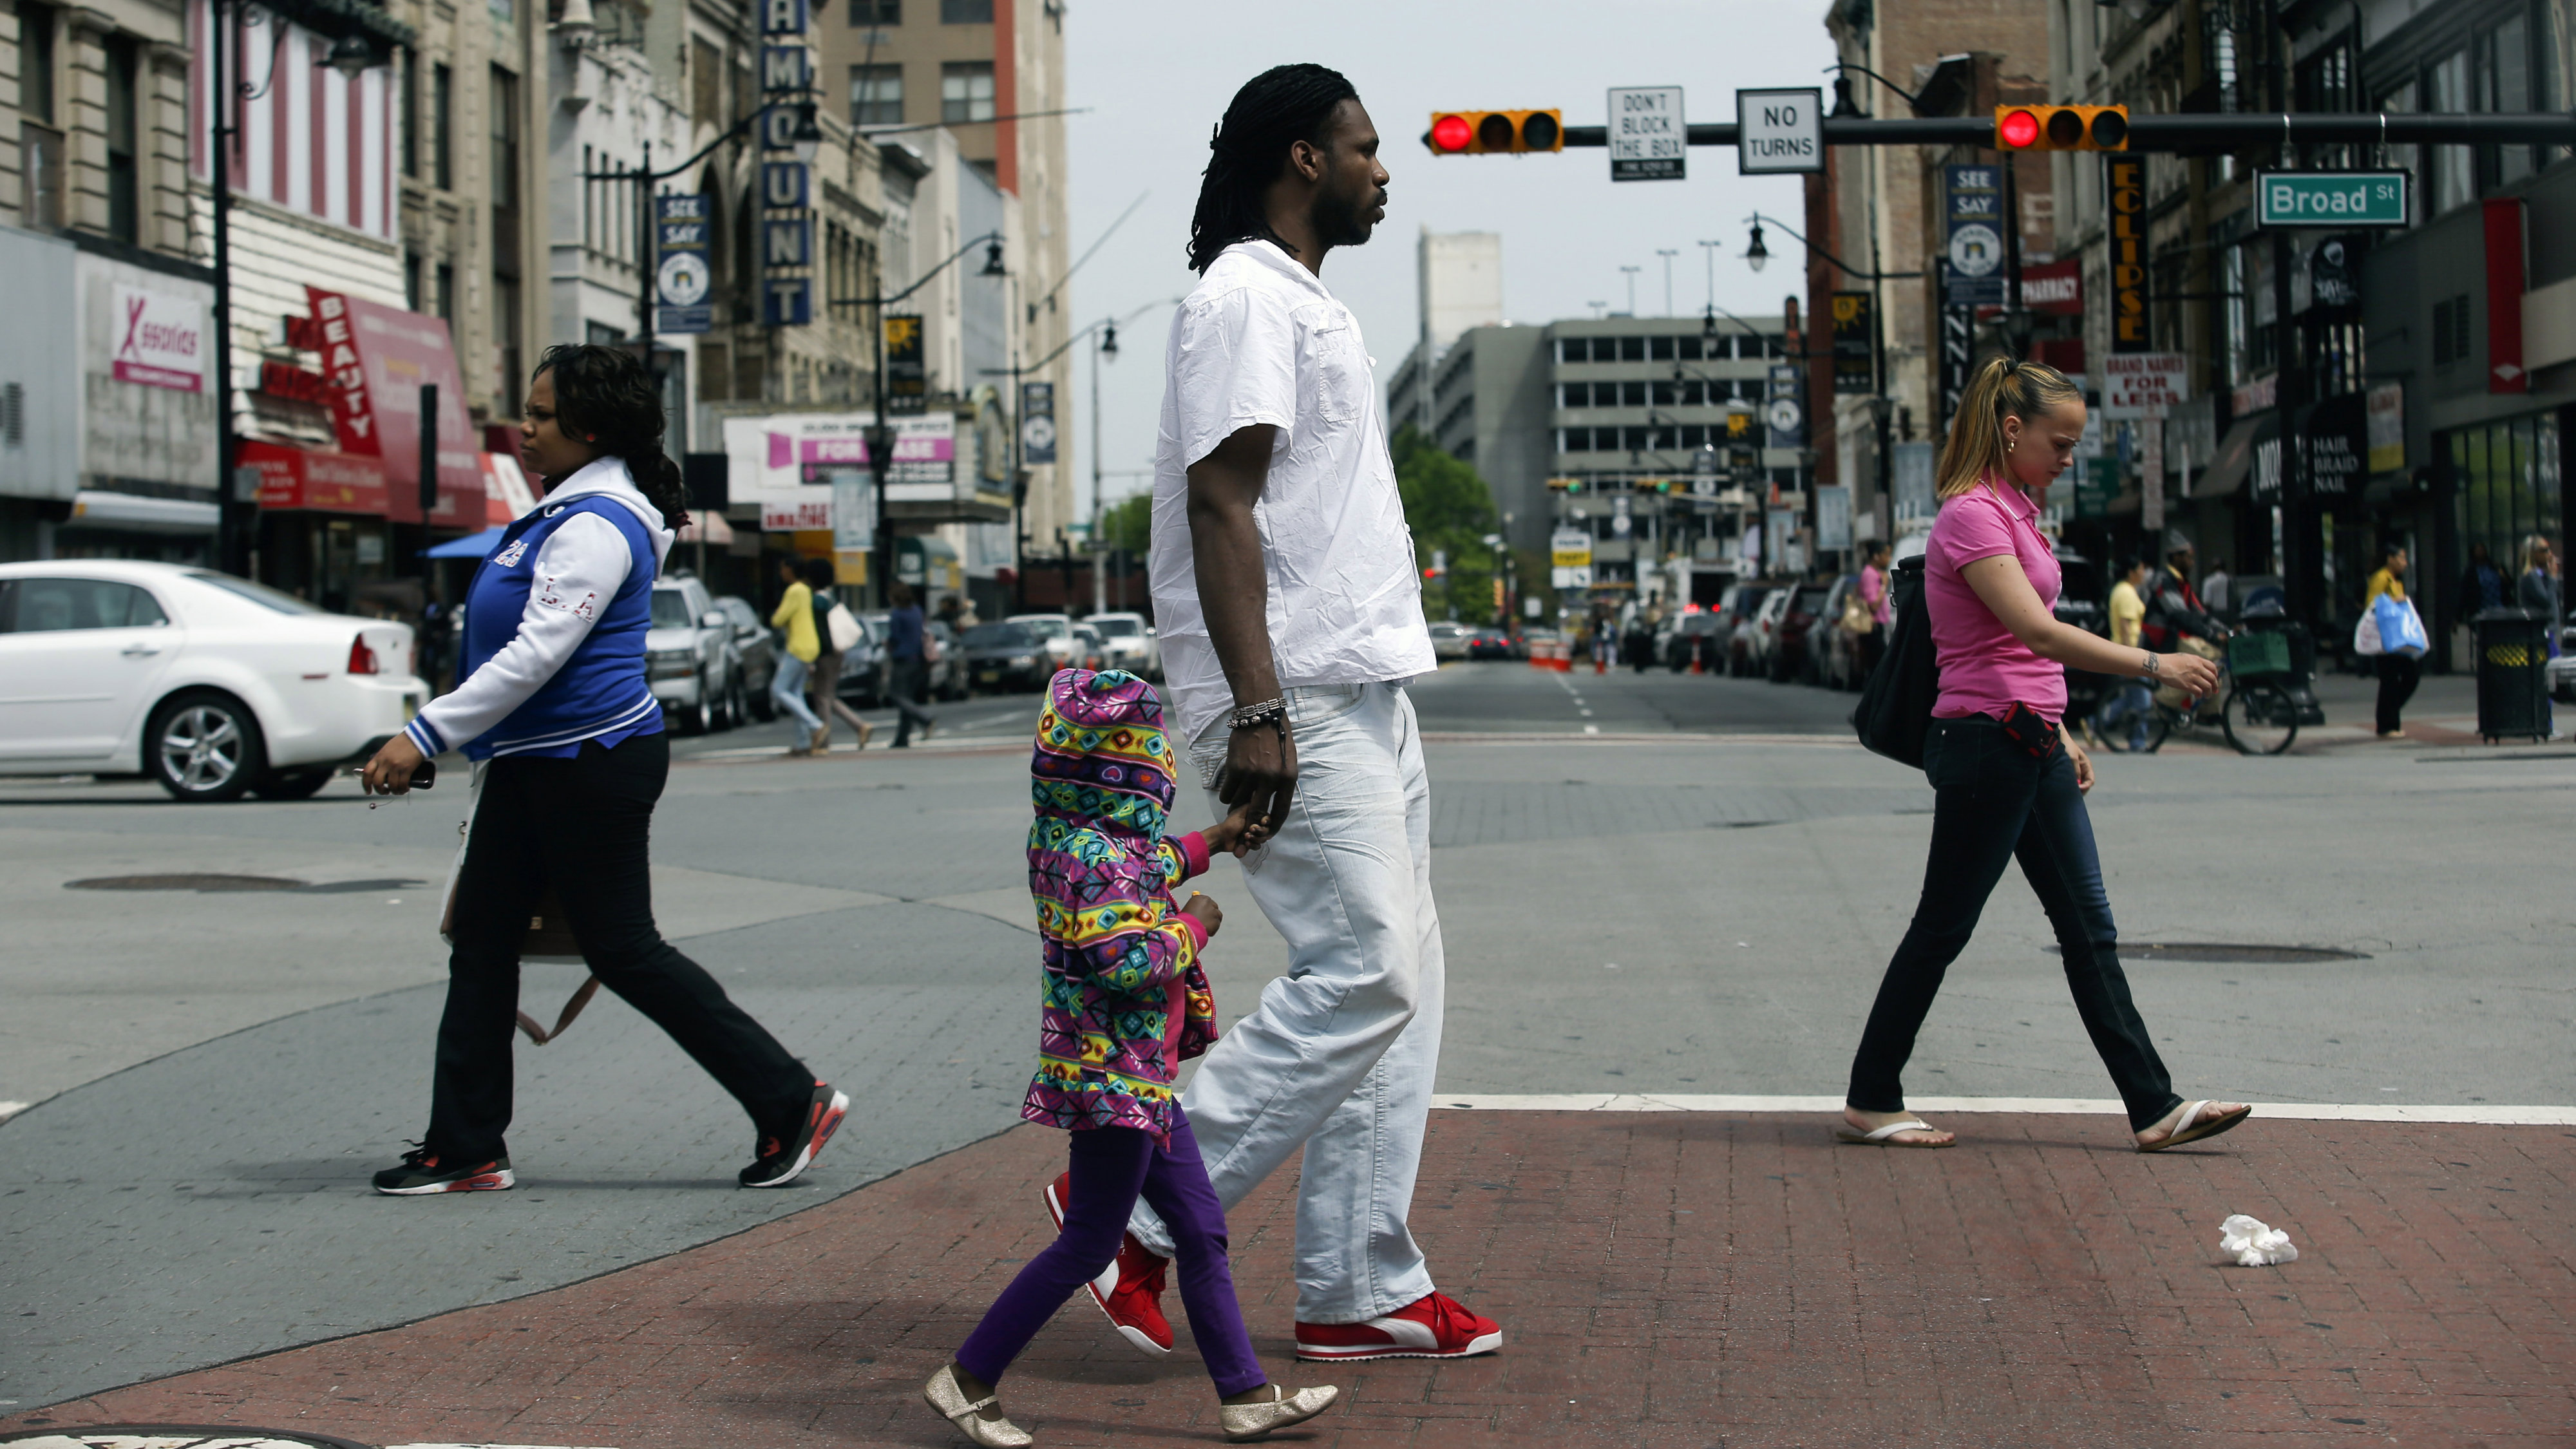 People cross a street during mayoral elections in Newark, New Jersey, May 13, 2014. Voters in Newark will pick a new mayor on Tuesday to fill a post held by popular Democrat Cory Booker and steer New Jersey's largest city as it struggles with an uptick in violent crime, unemployment and a possible state takeover of its finances.